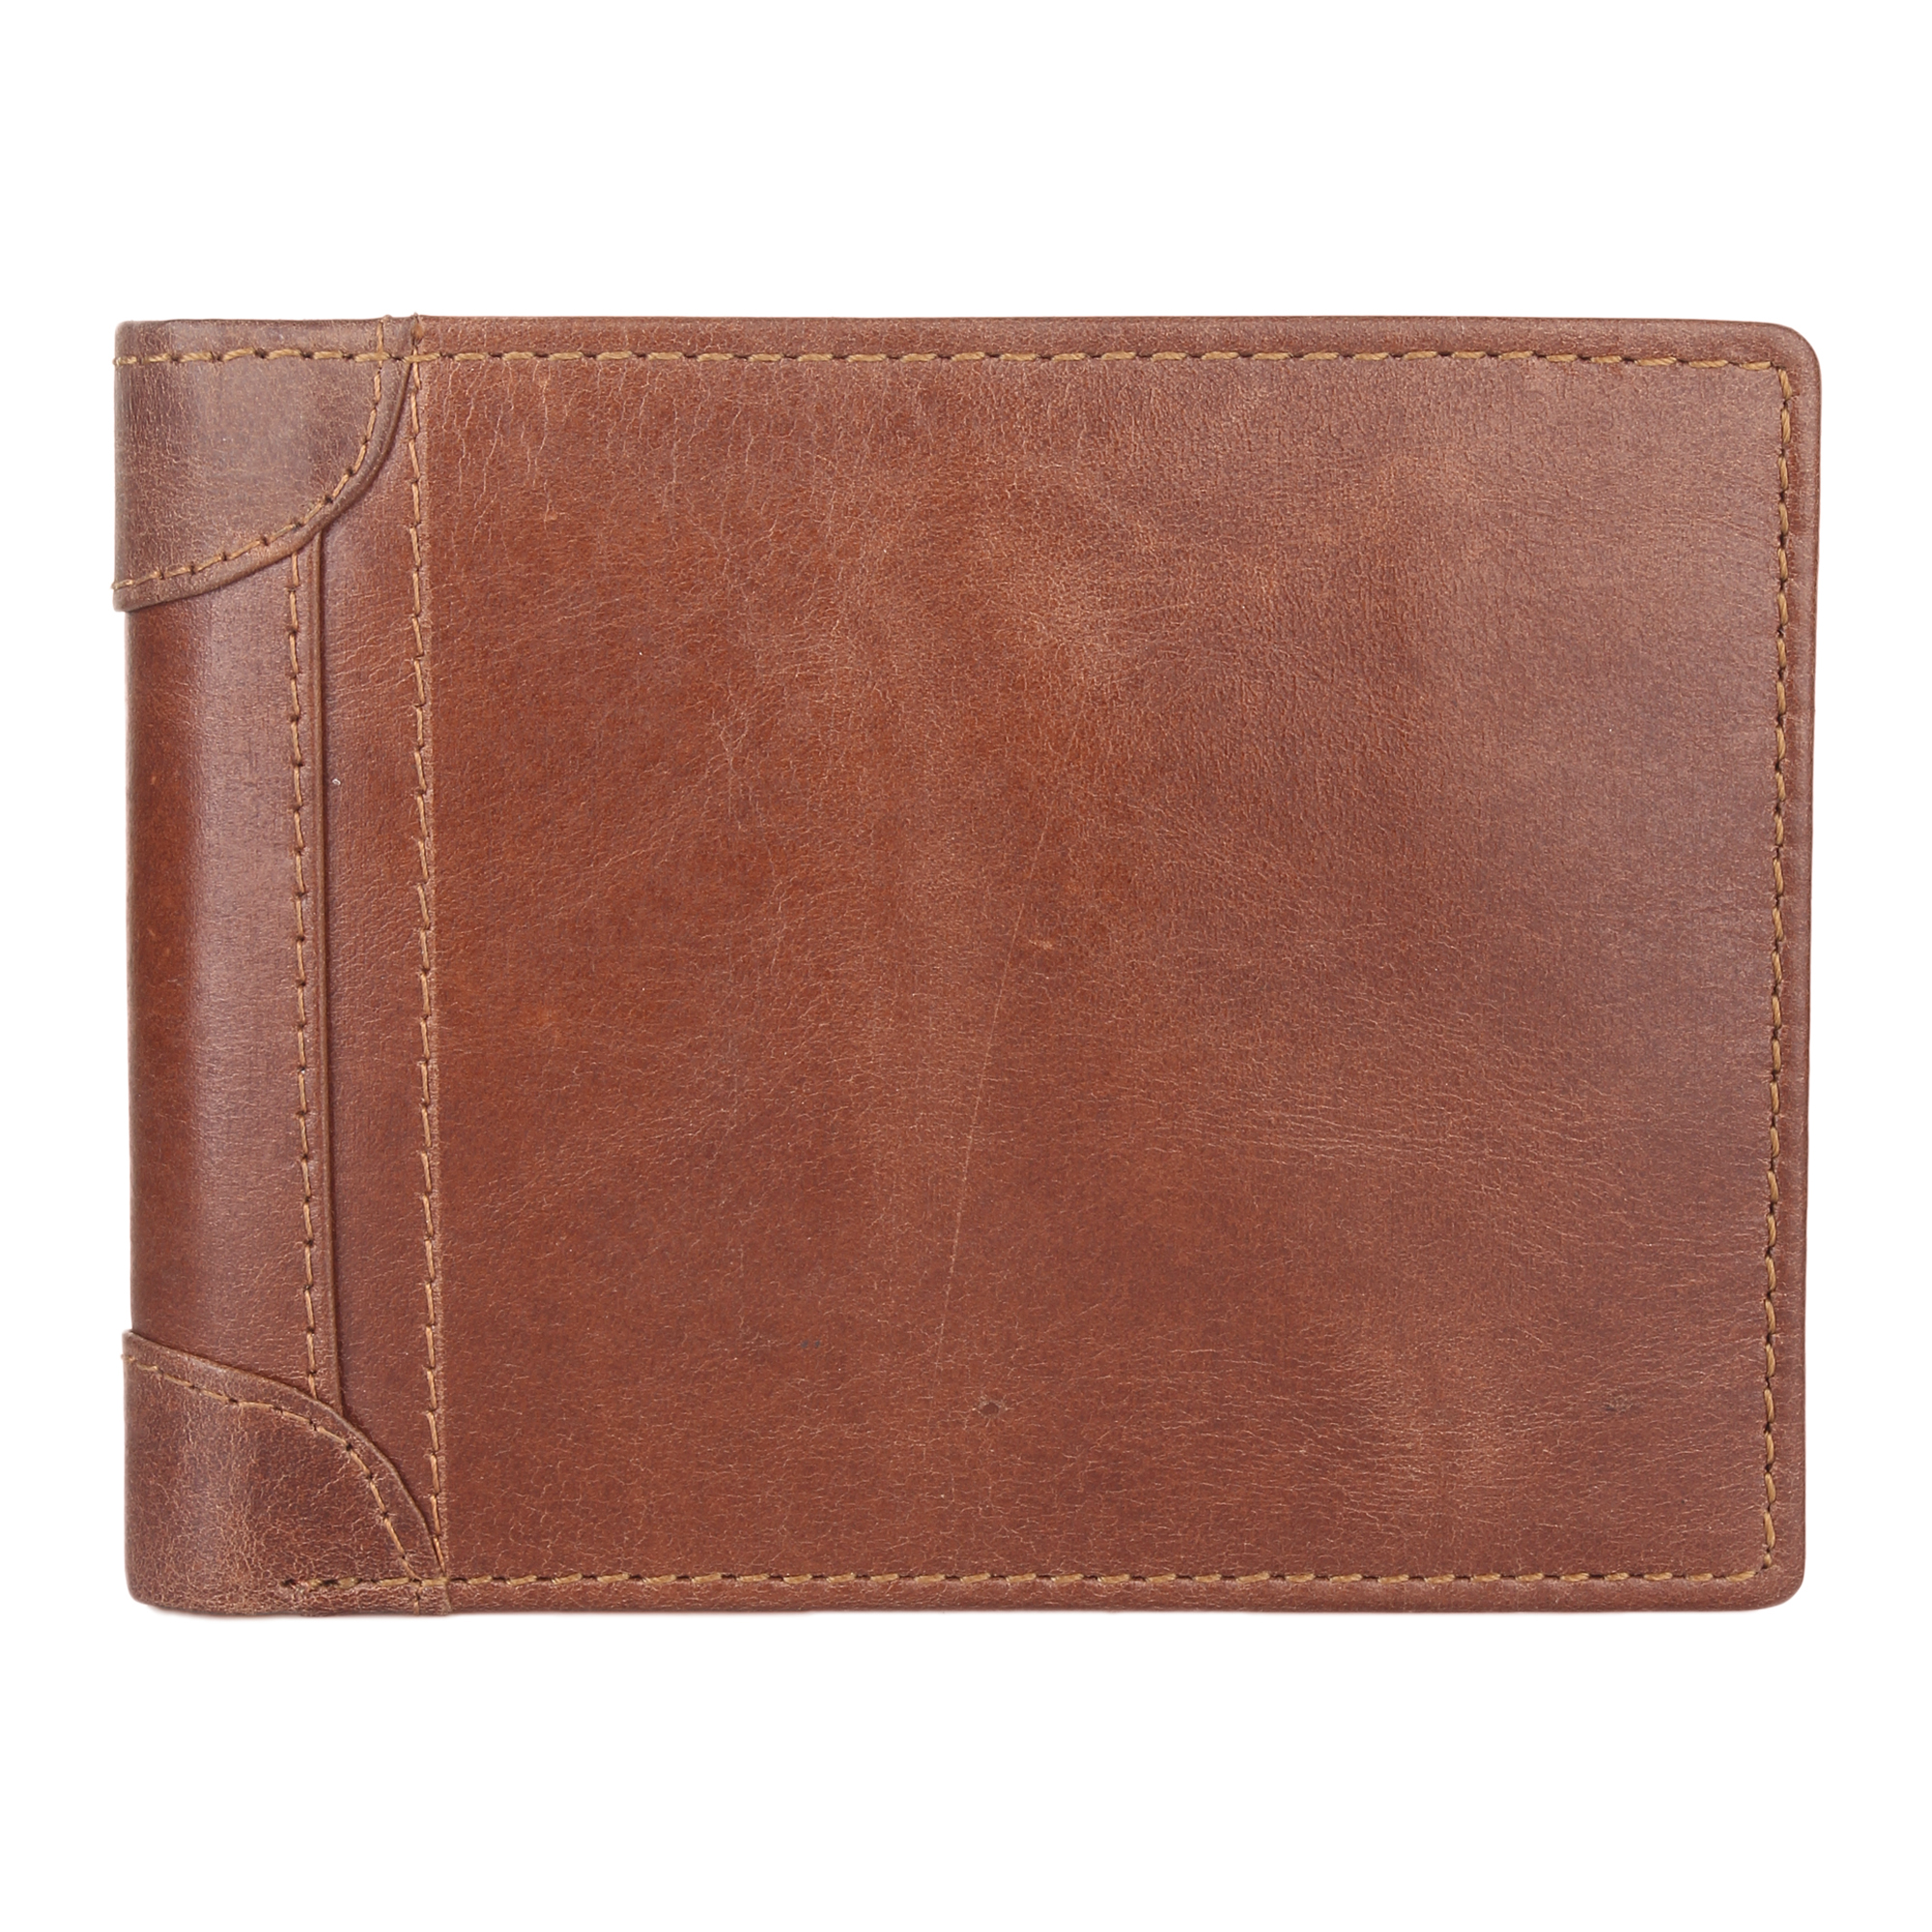 Leather Wallets Manufacturers in Montreal, Leather Wallets Suppliers in Montreal, Leather Wallets Wholesalers in Montreal, Leather Wallets Traders in Montreal, custom leather wallet manufacturers in Montreal, Leathe